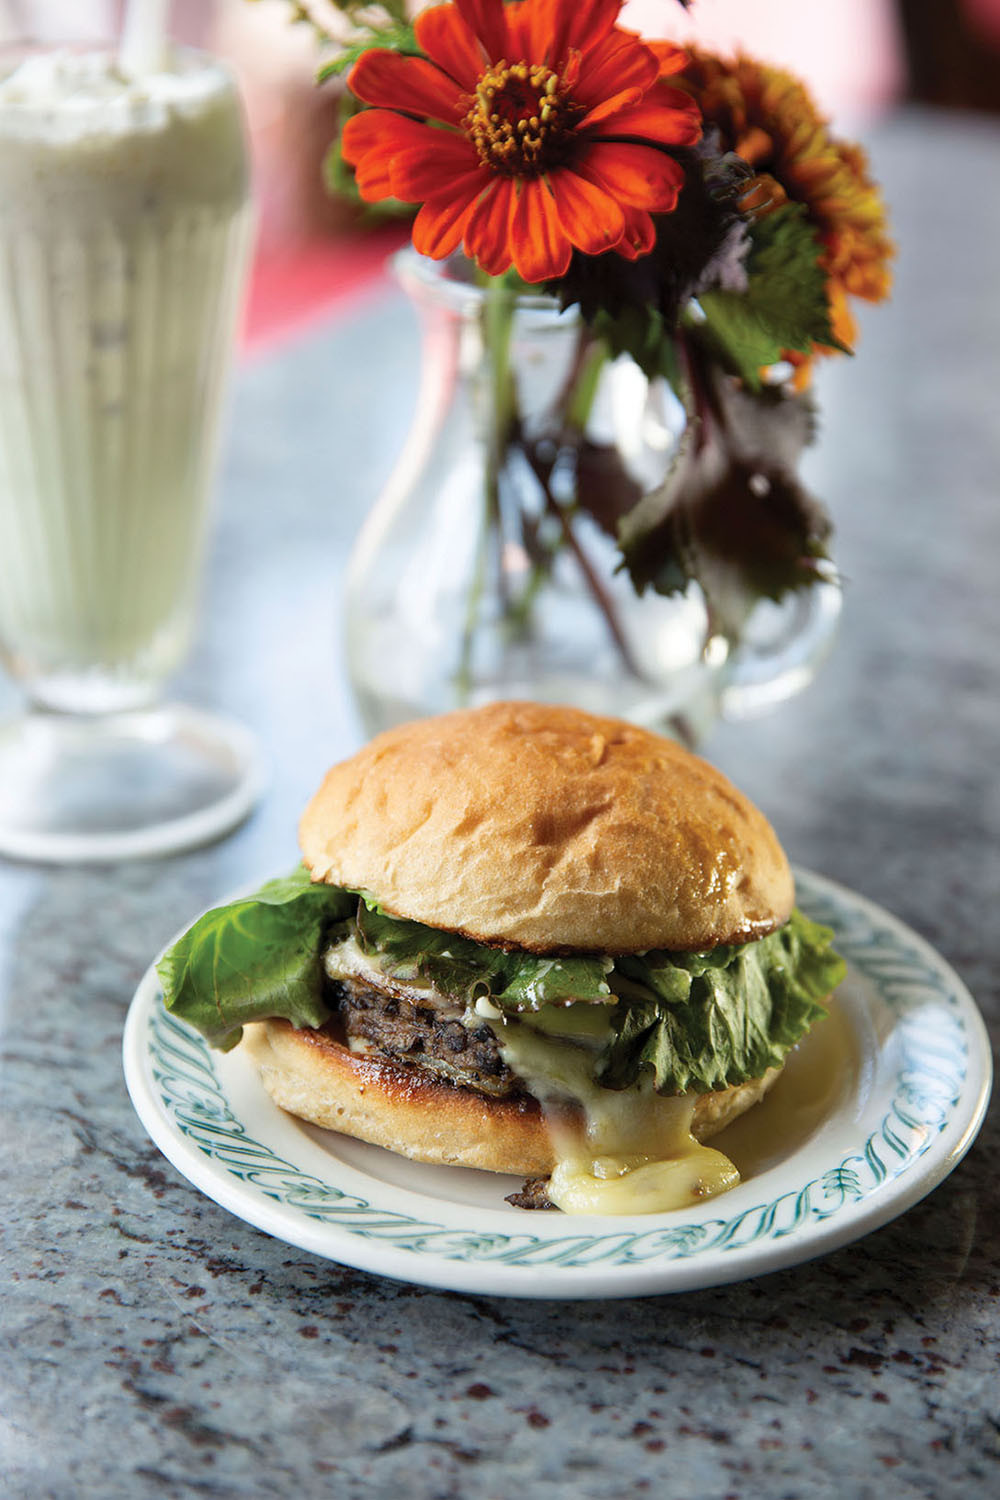 burger with lettuce sauce and melty cheese spilling out by vase of bright wild flowers and mint milkshake with whipped cream